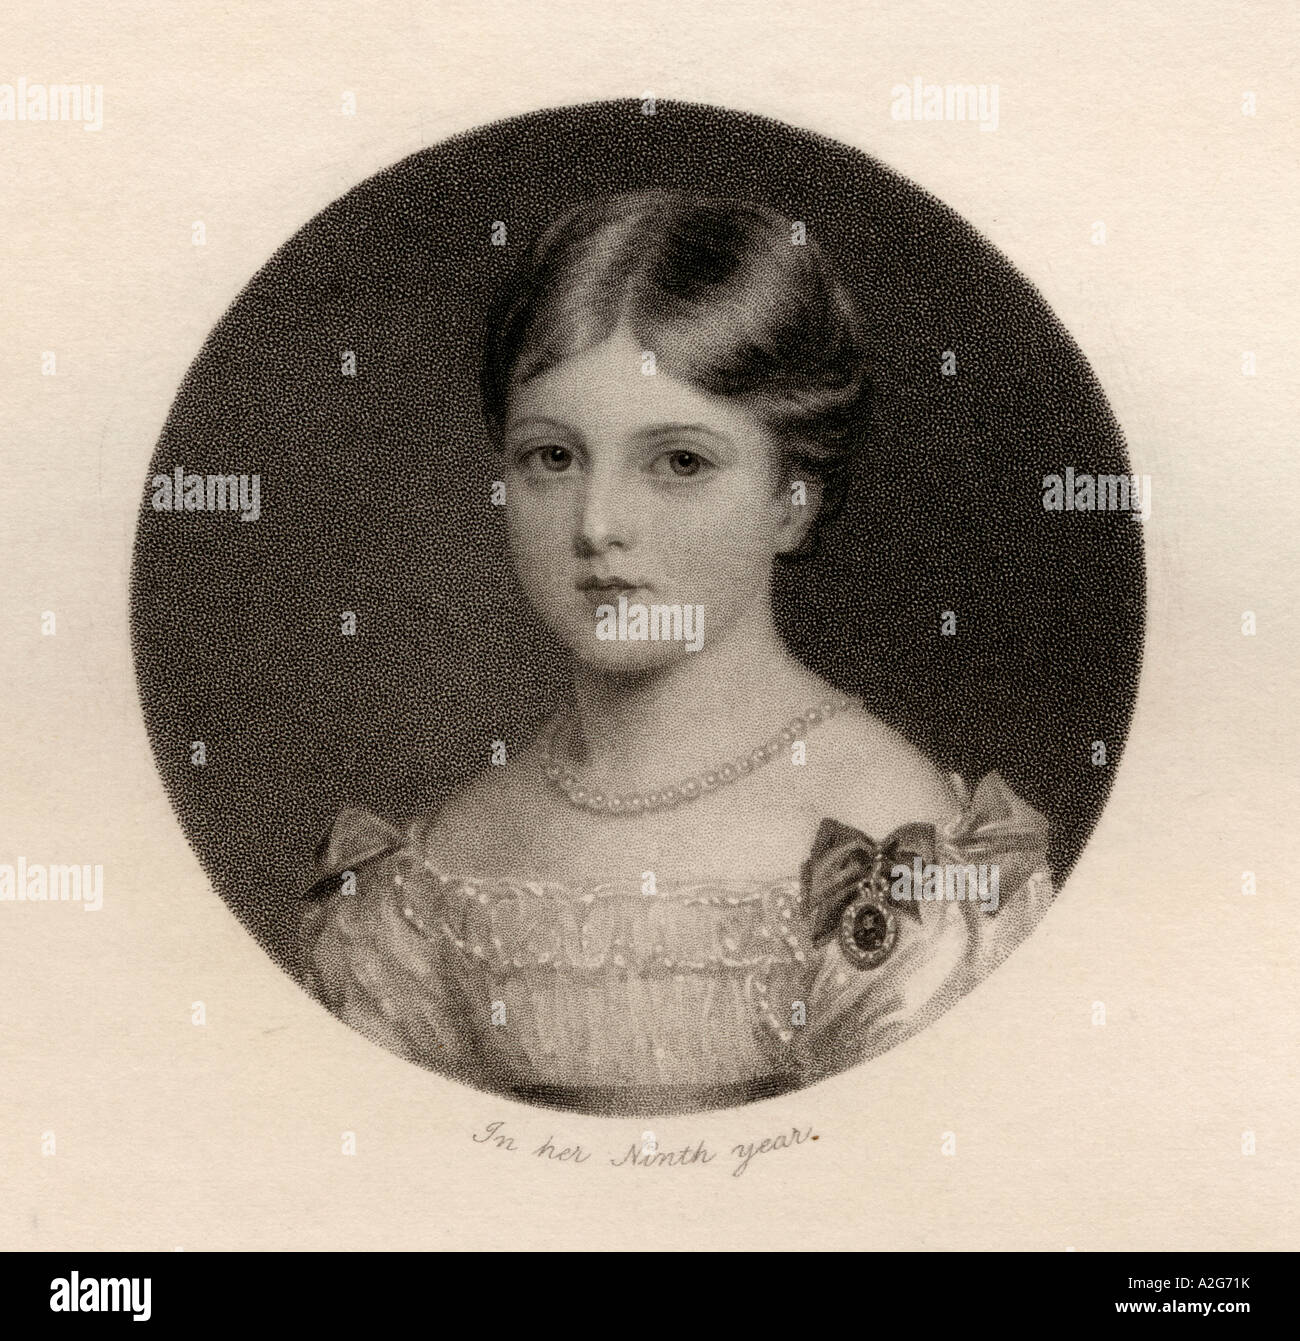 Princess Alexandrina Victoria of Saxe Coburg 1819 to 1901 later Queen Victoria - Stock Image